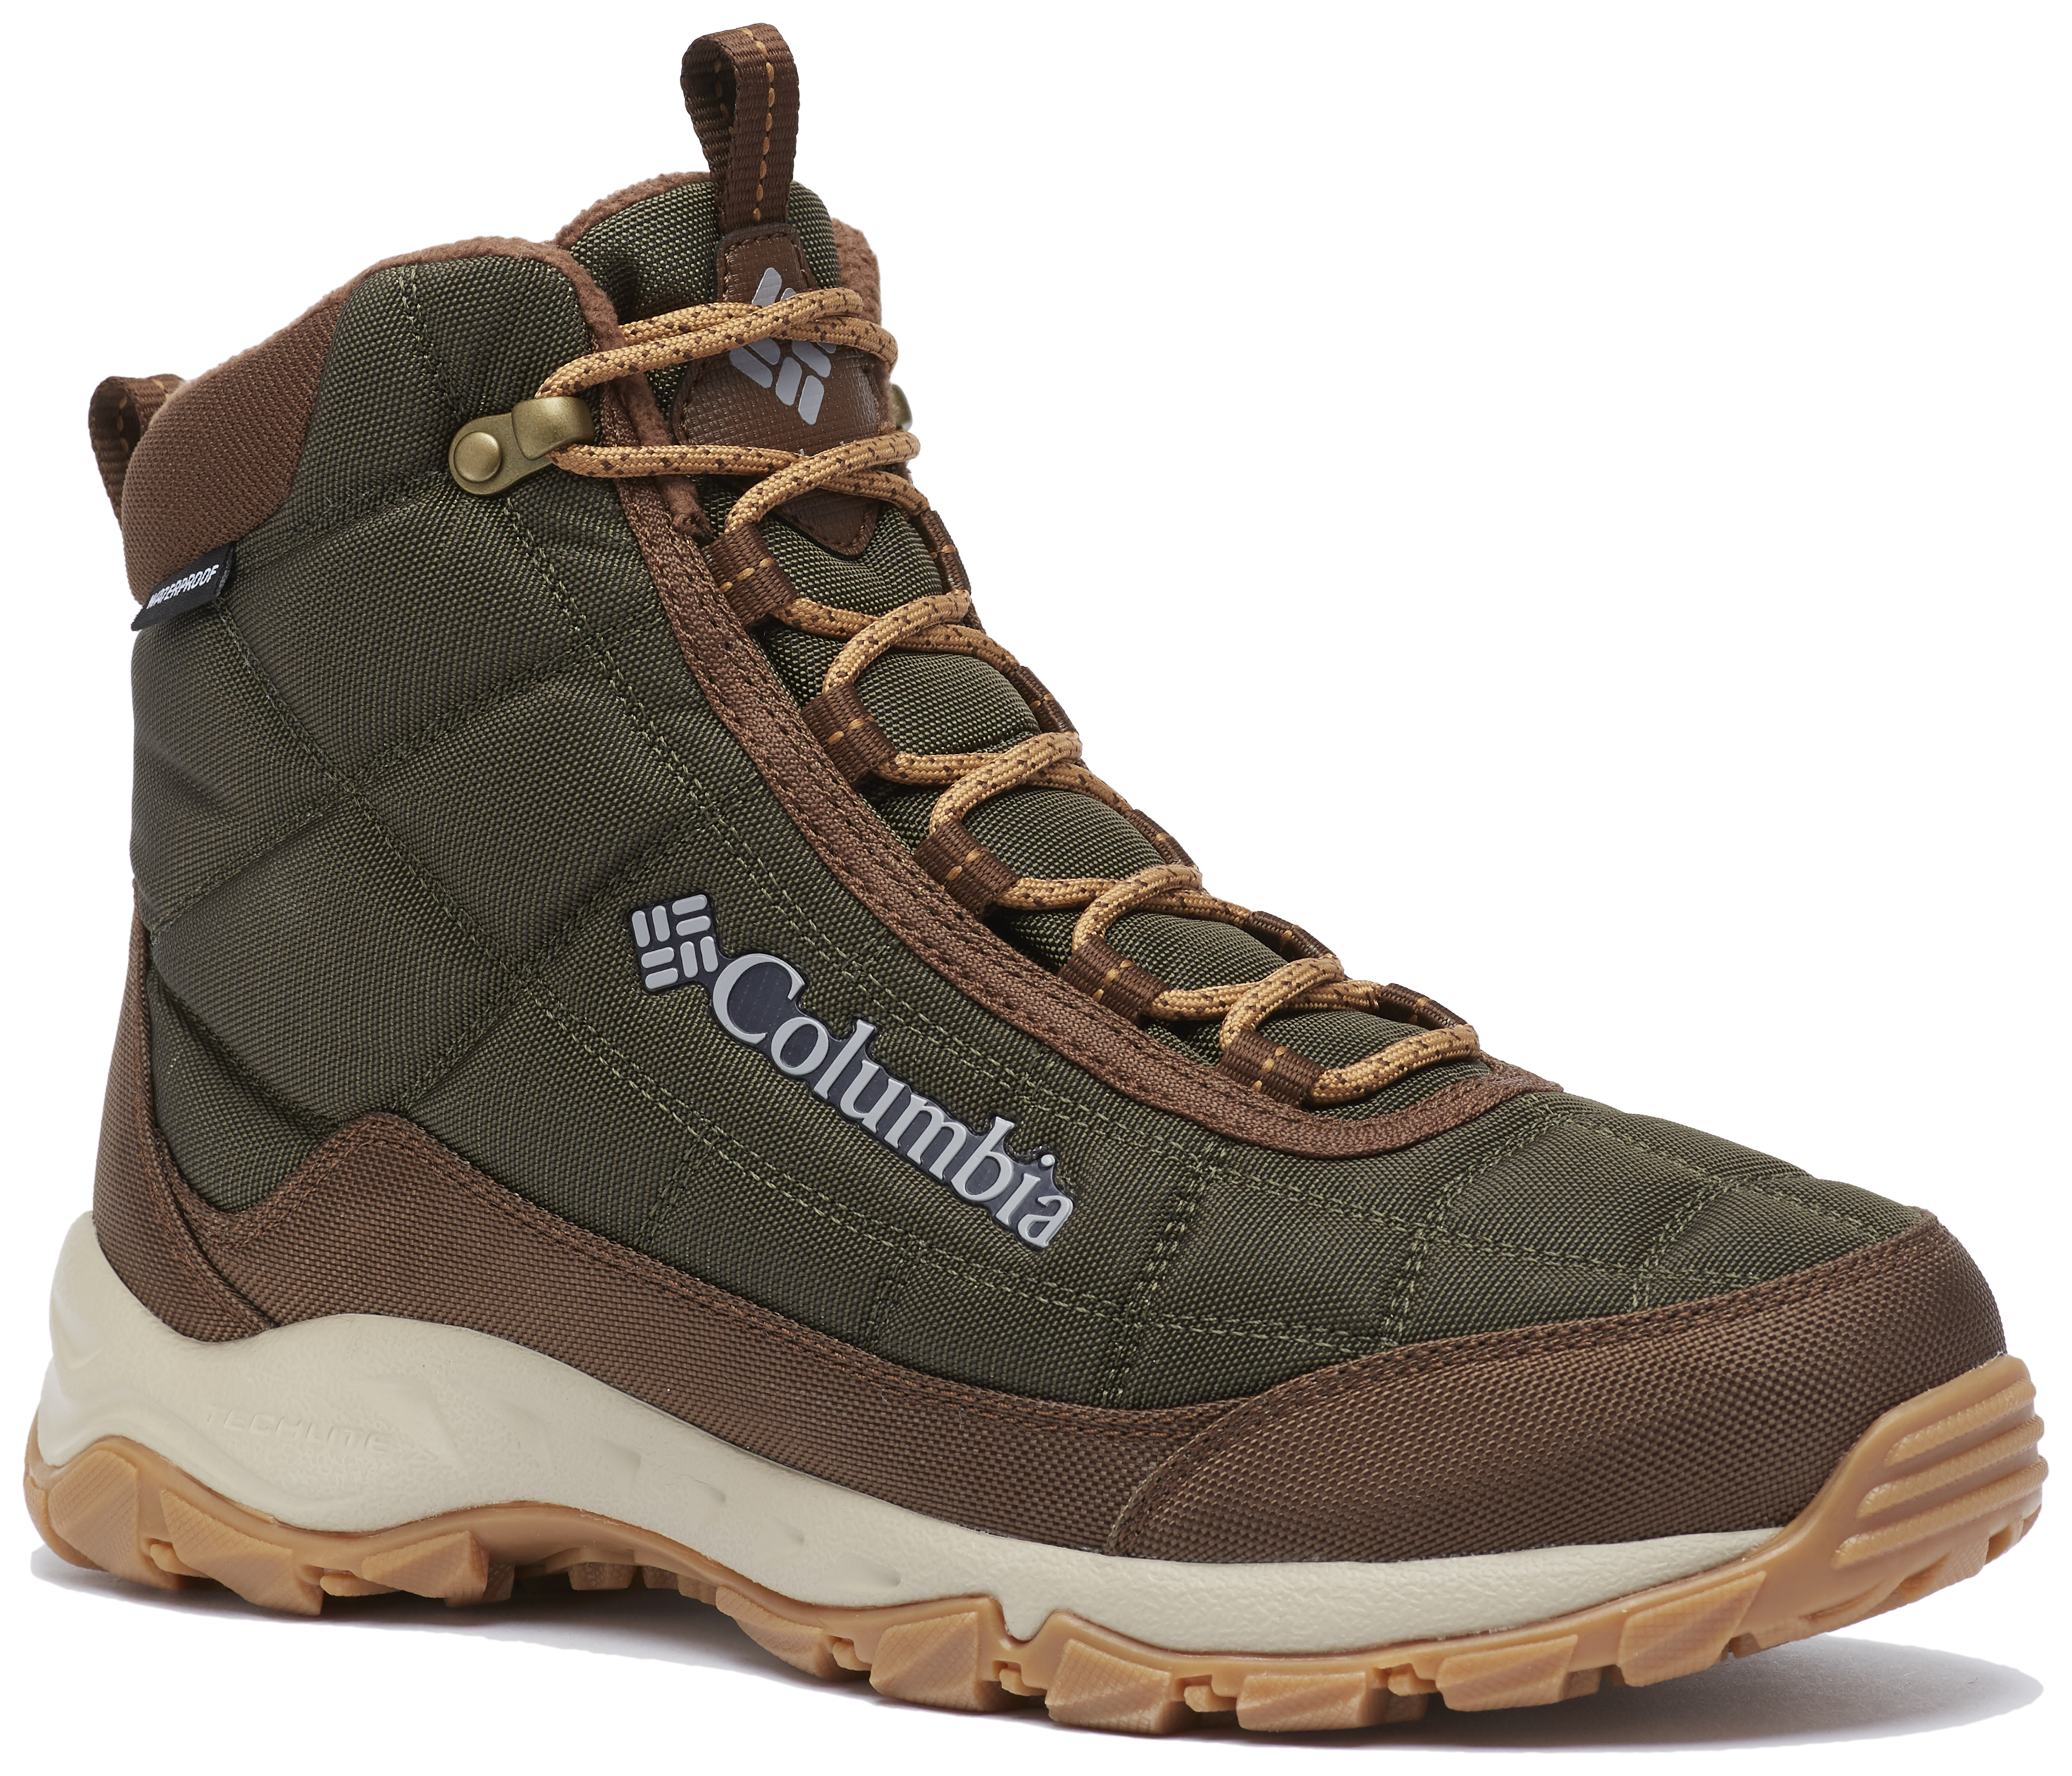 BM1766-213 COLUMBIA FIRECAMP BOOT